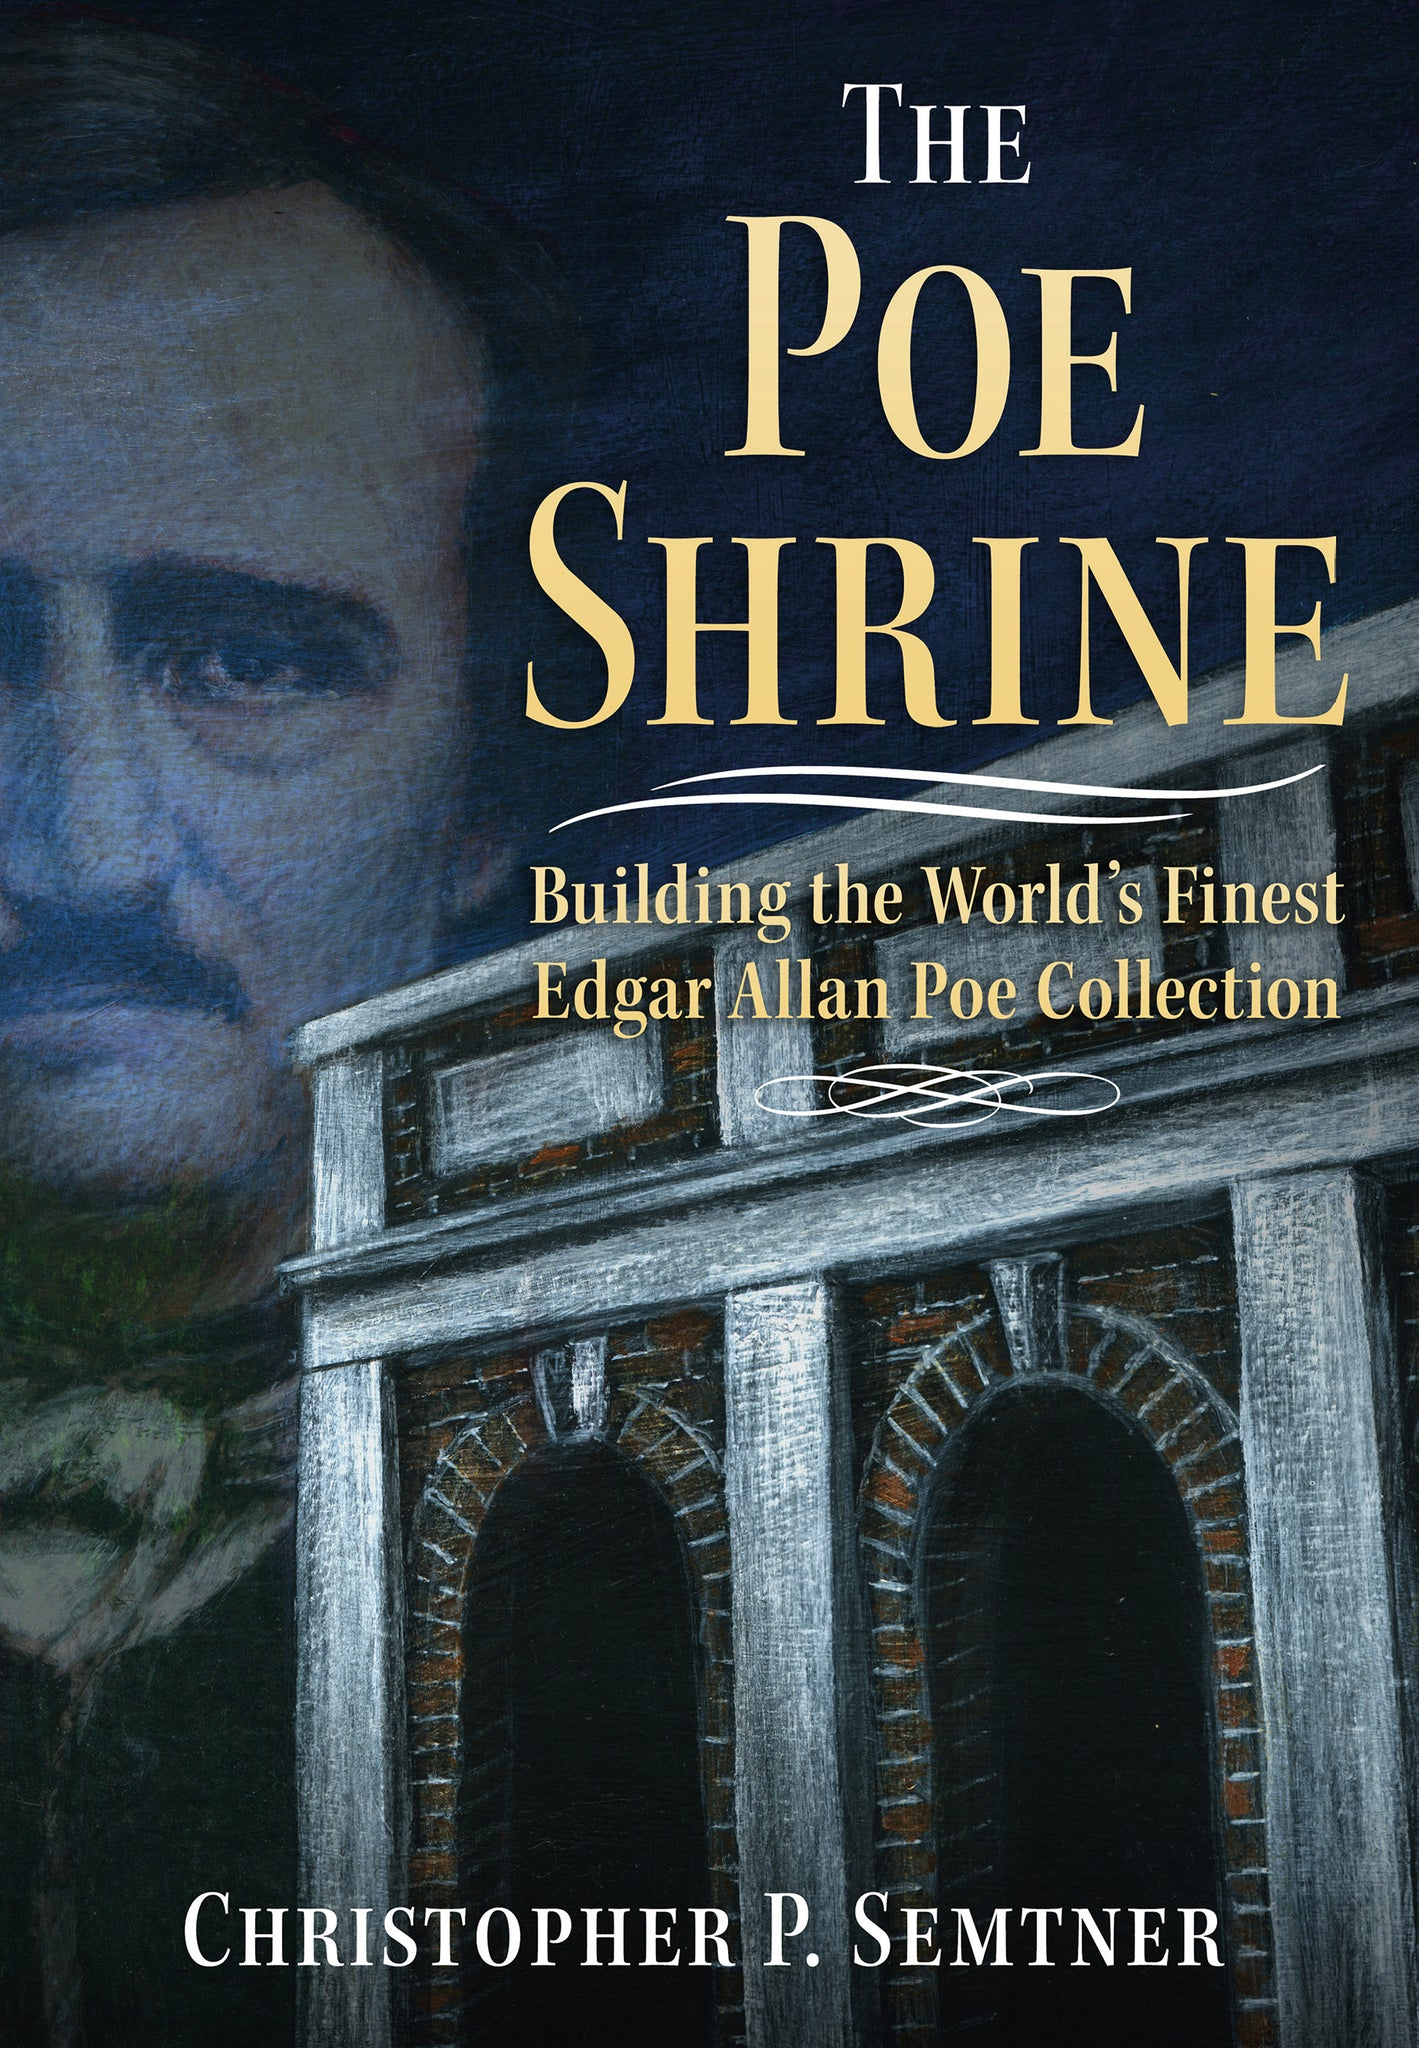 The Poe Shrine: Building the World's Finest Edgar Allen Poe Collection